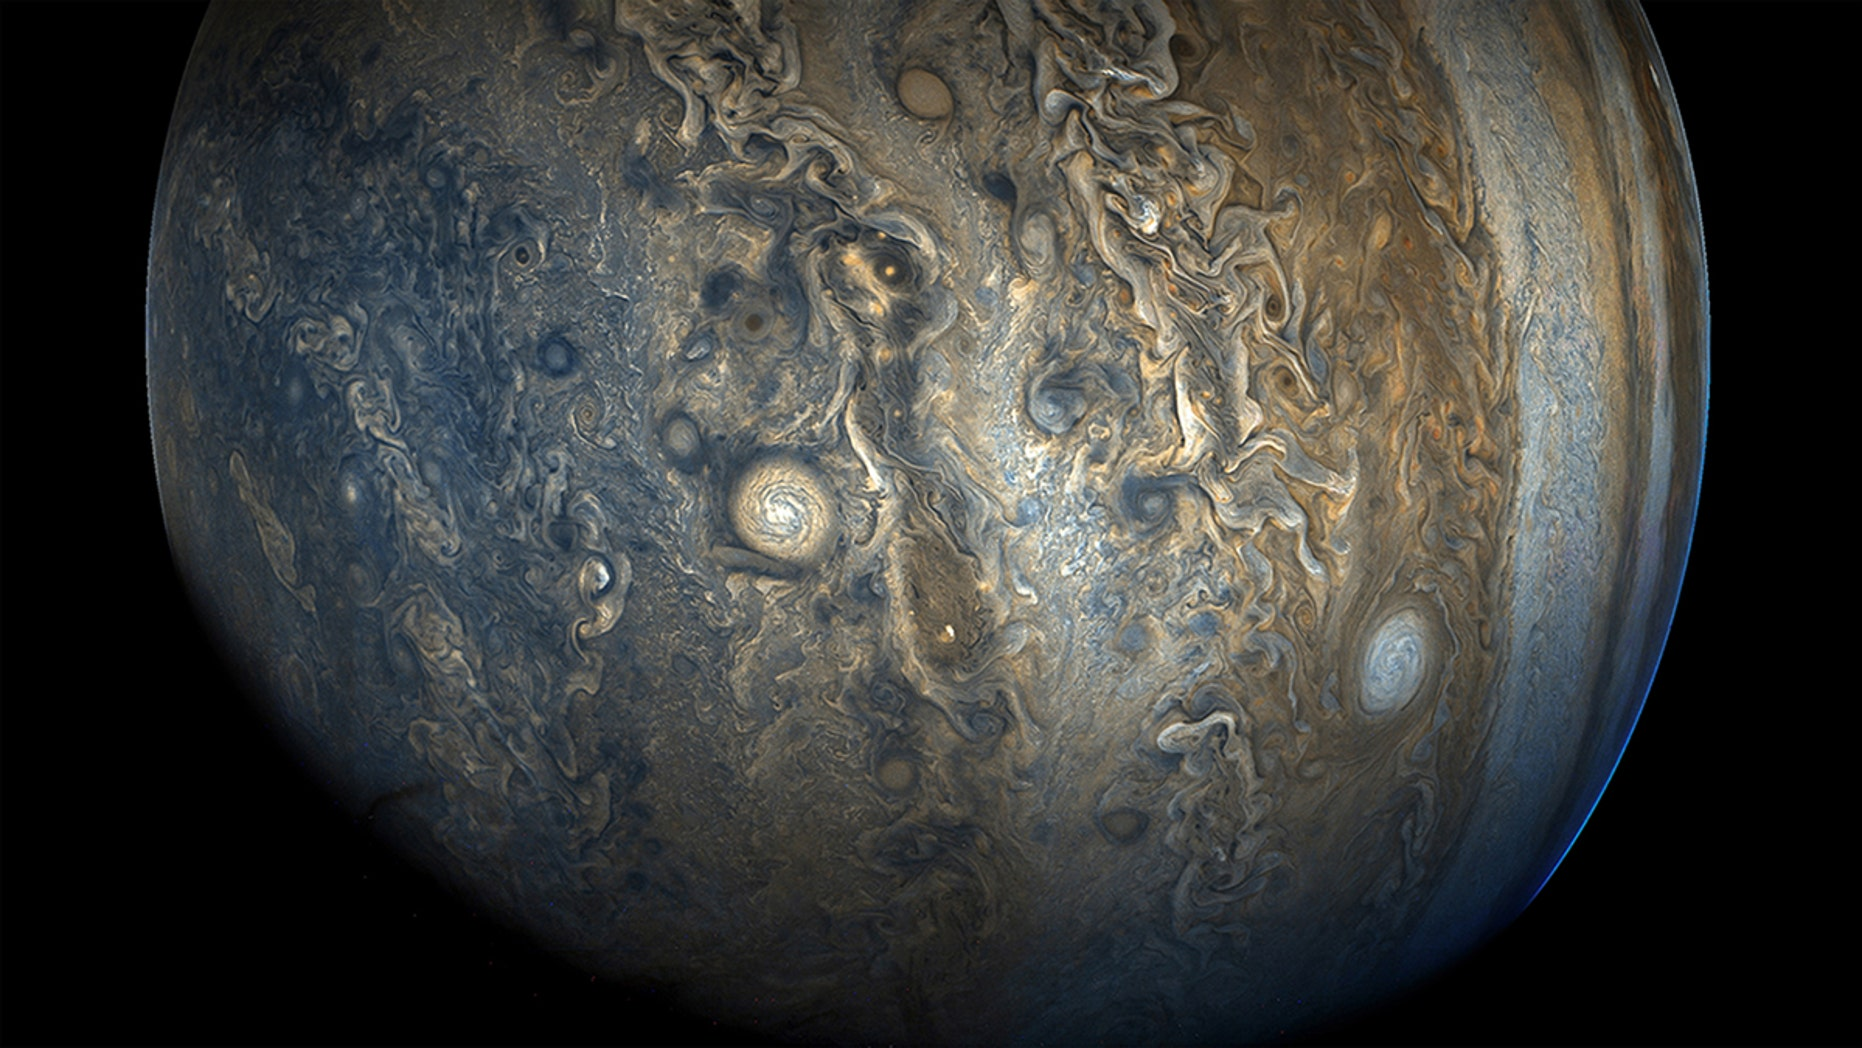 Jupiter's southern hemisphere, as photographed by NASA's Juno spacecraft.